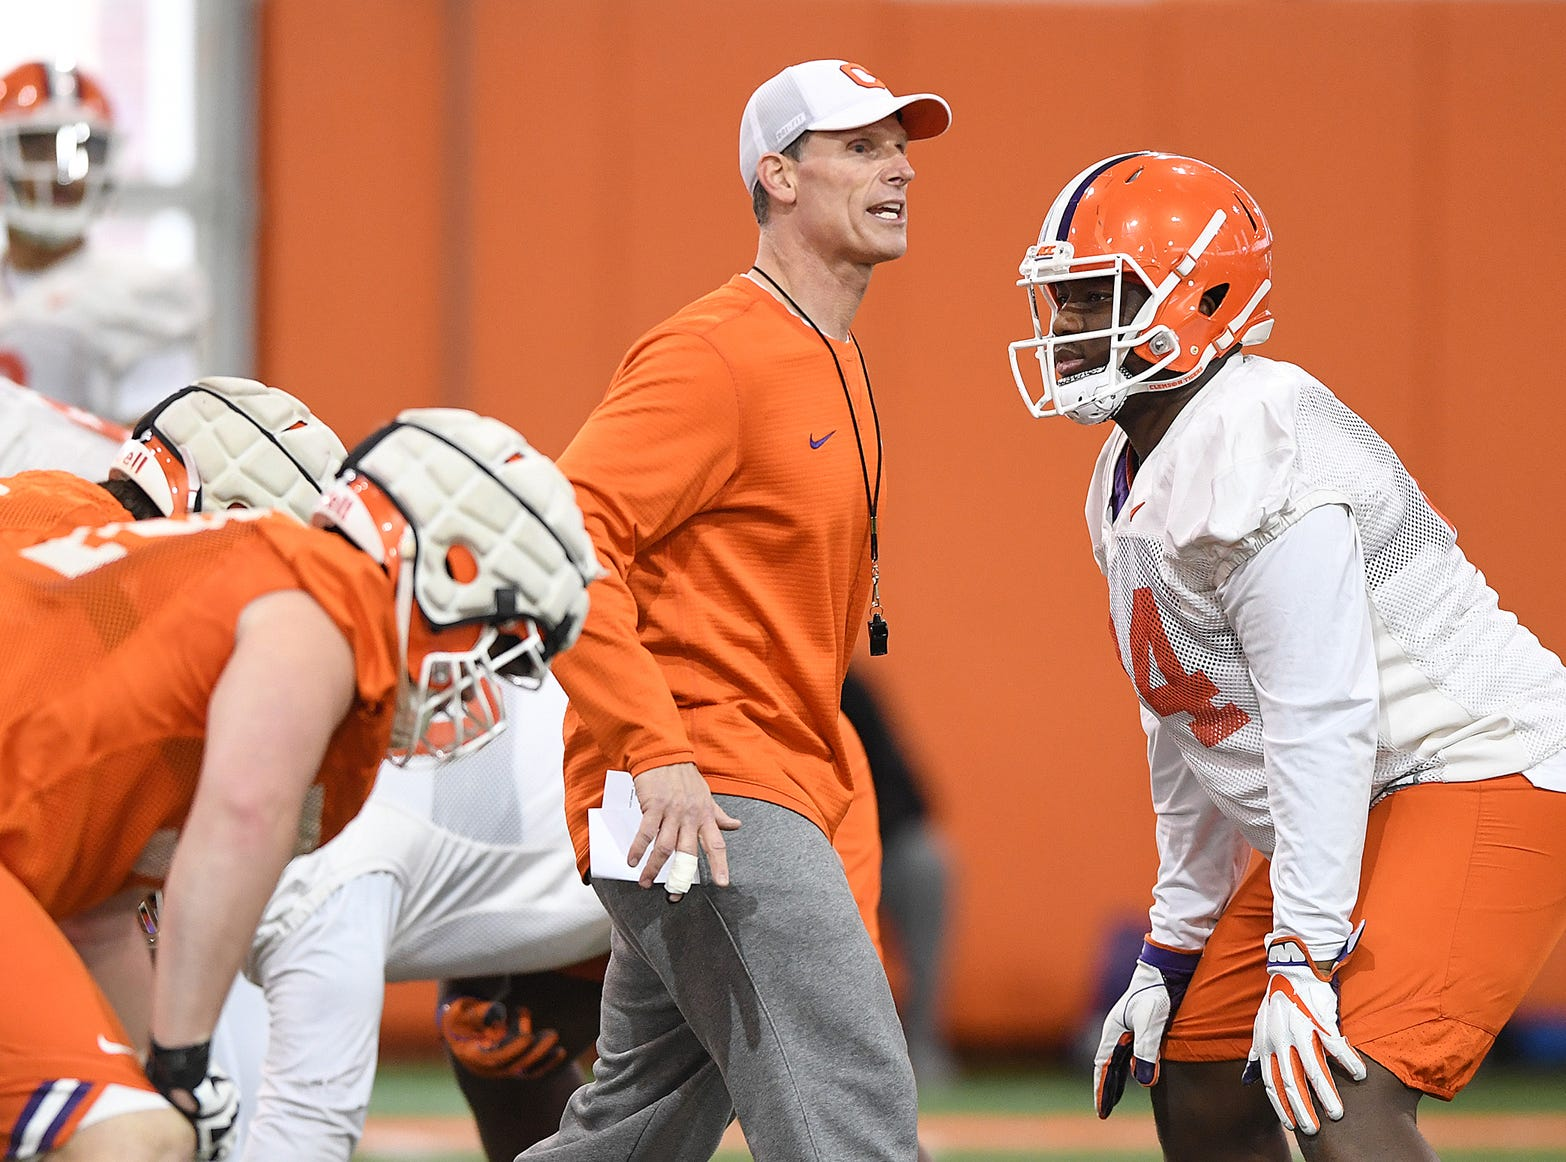 Clemson defensive coordinator Brent Venables during the Tigers Cotton Bowl practice on Wednesday, December 12, 2018.